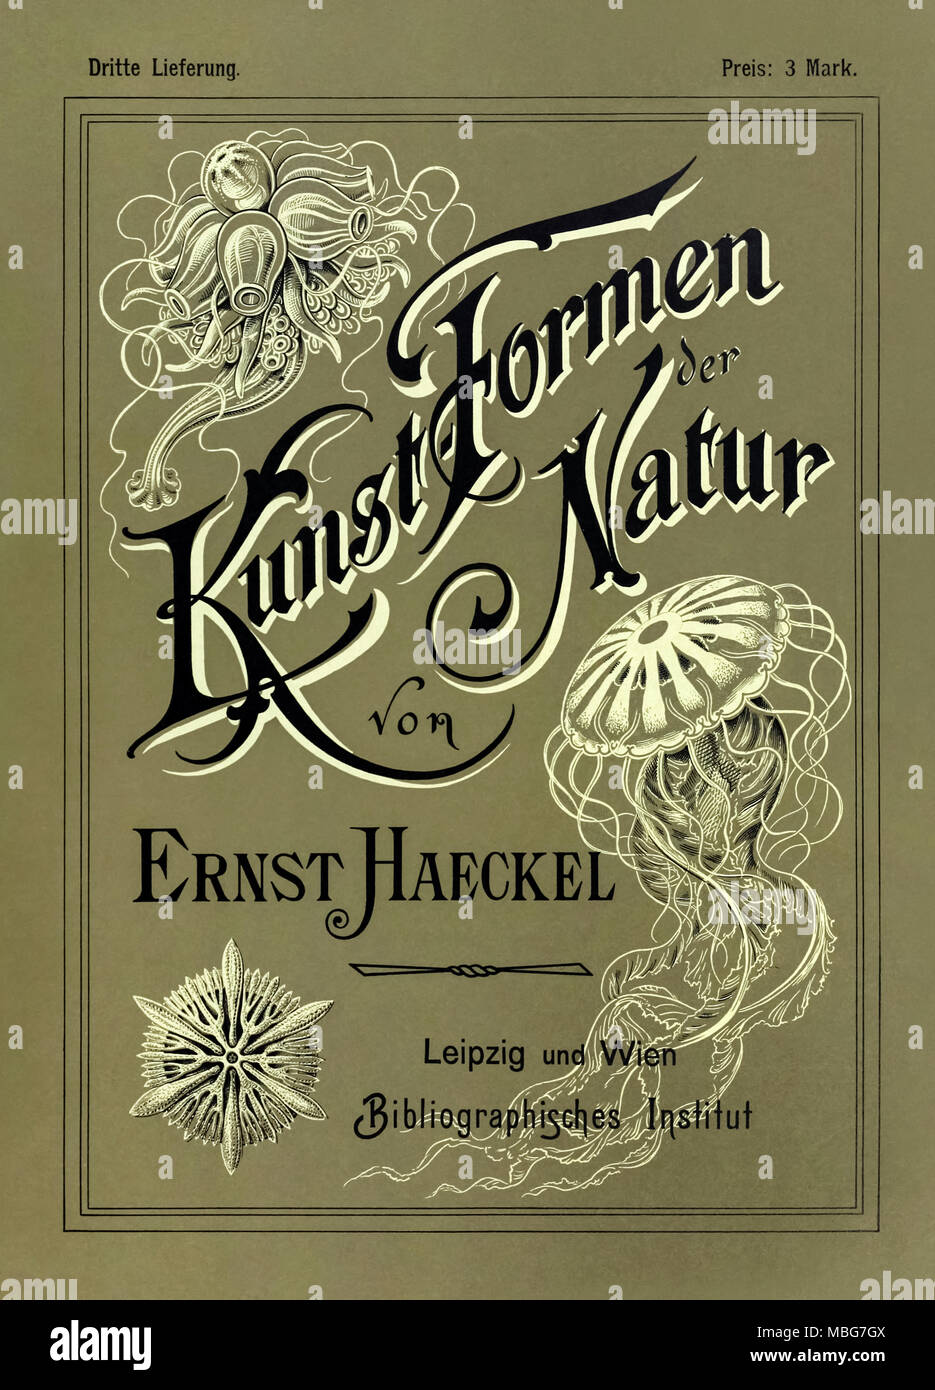 'Kunstformen der Natur' (Art Forms in Nature) front cover of third edition illustrated by Ernst Haeckel (1834-1919), lithograph by Adolf Giltsch (1852-1911) and published by Bibliographisches Institut between 1899 and 1904. See more information below. - Stock Image